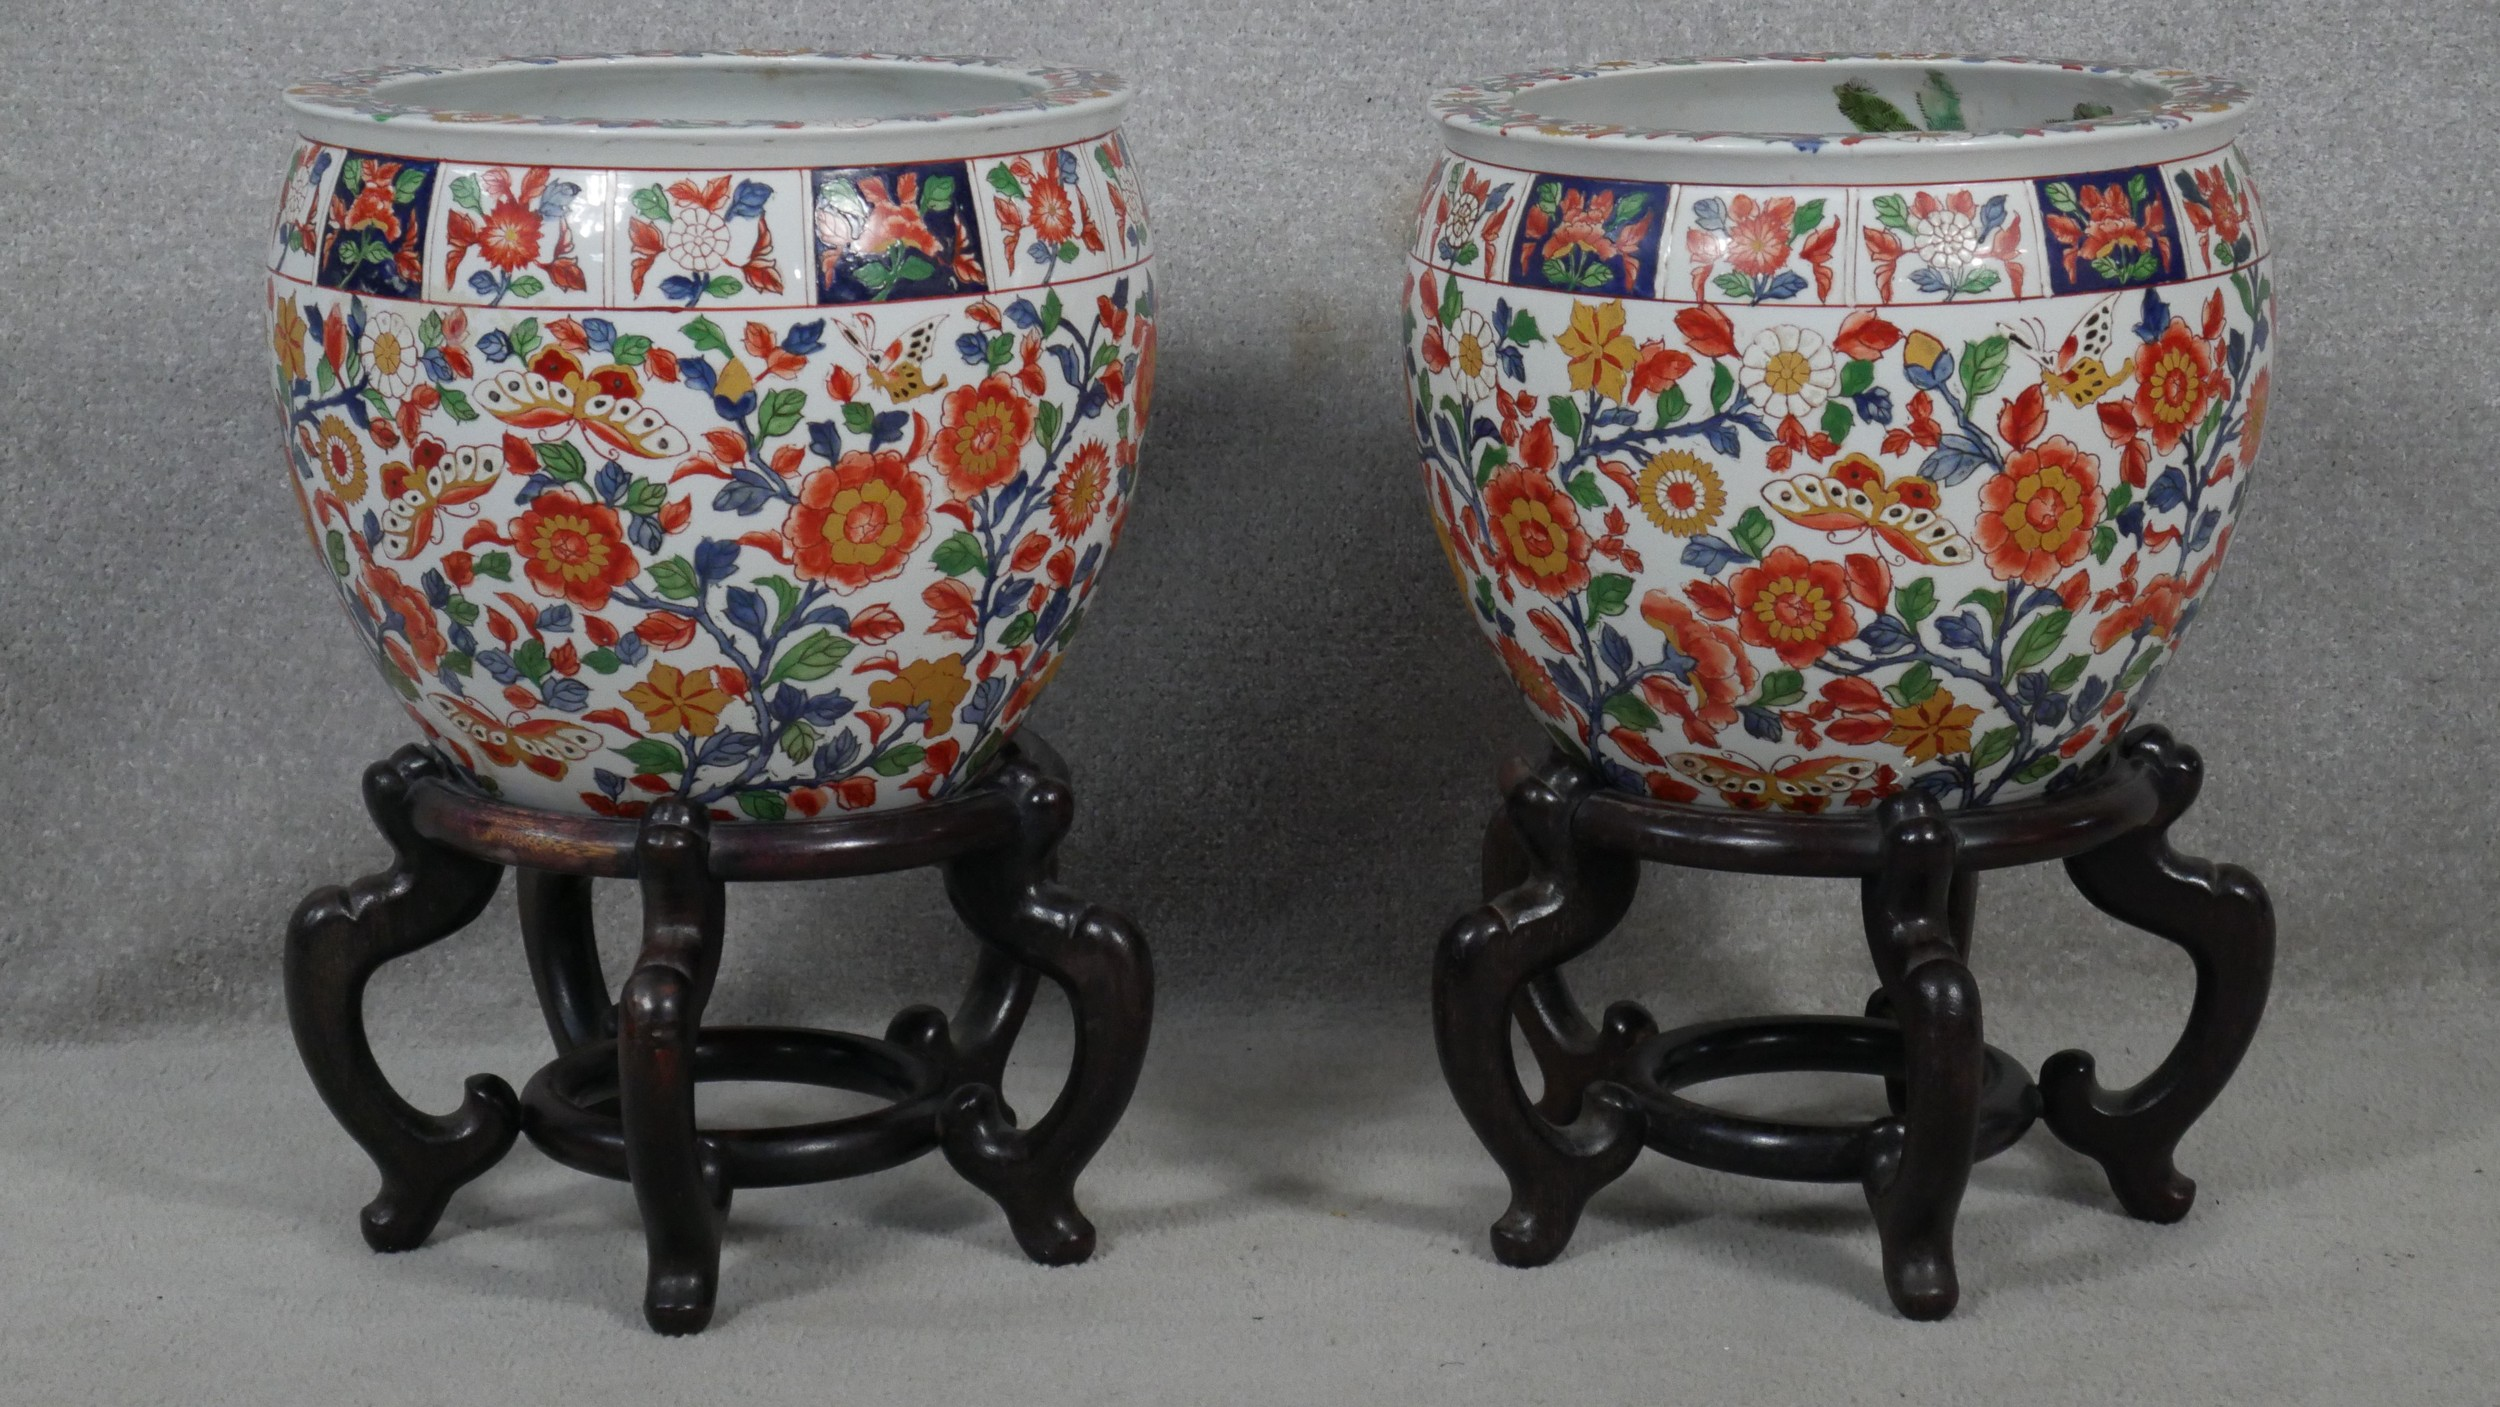 A pair of early 20th century glazed Chinese Imari ceramic planters/fish bowls on carved hardwood